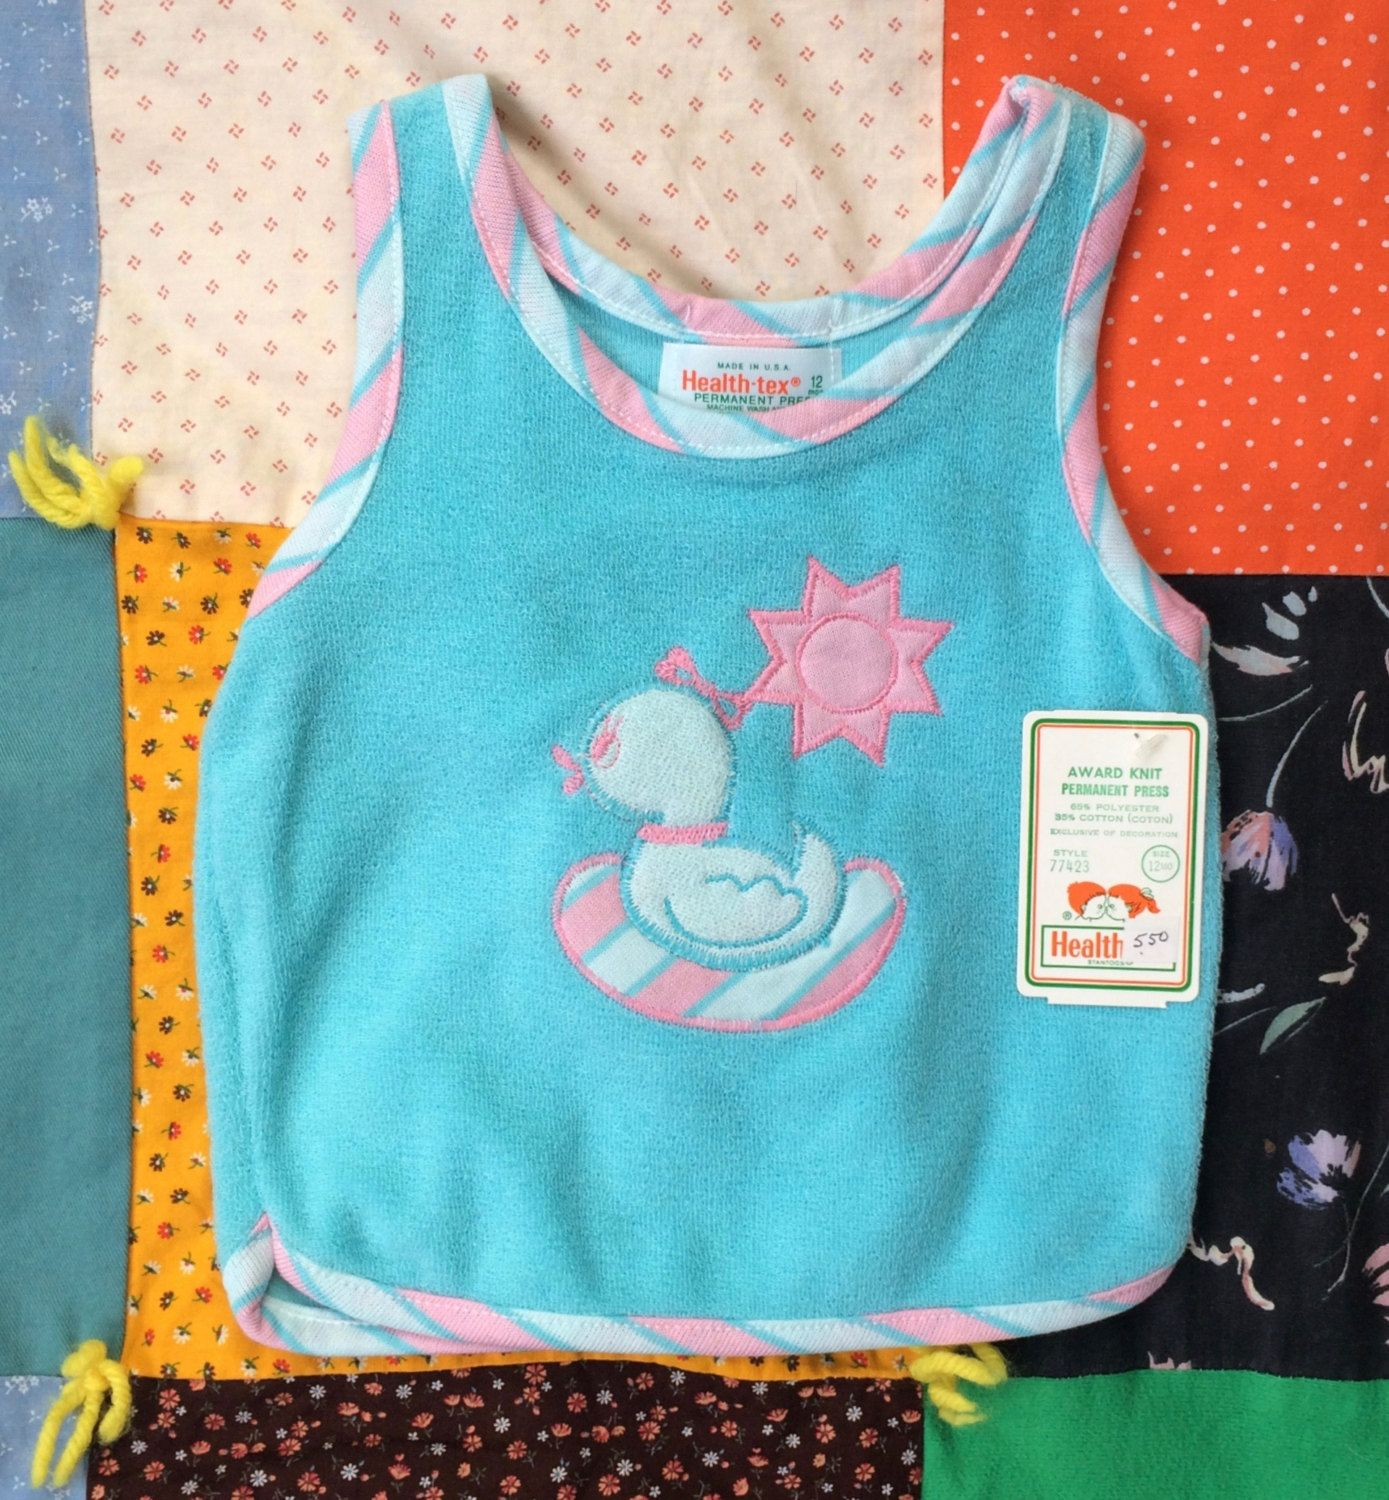 Healthtex Duck Shirt 9-12 Months NOS by lishyloo on Etsy